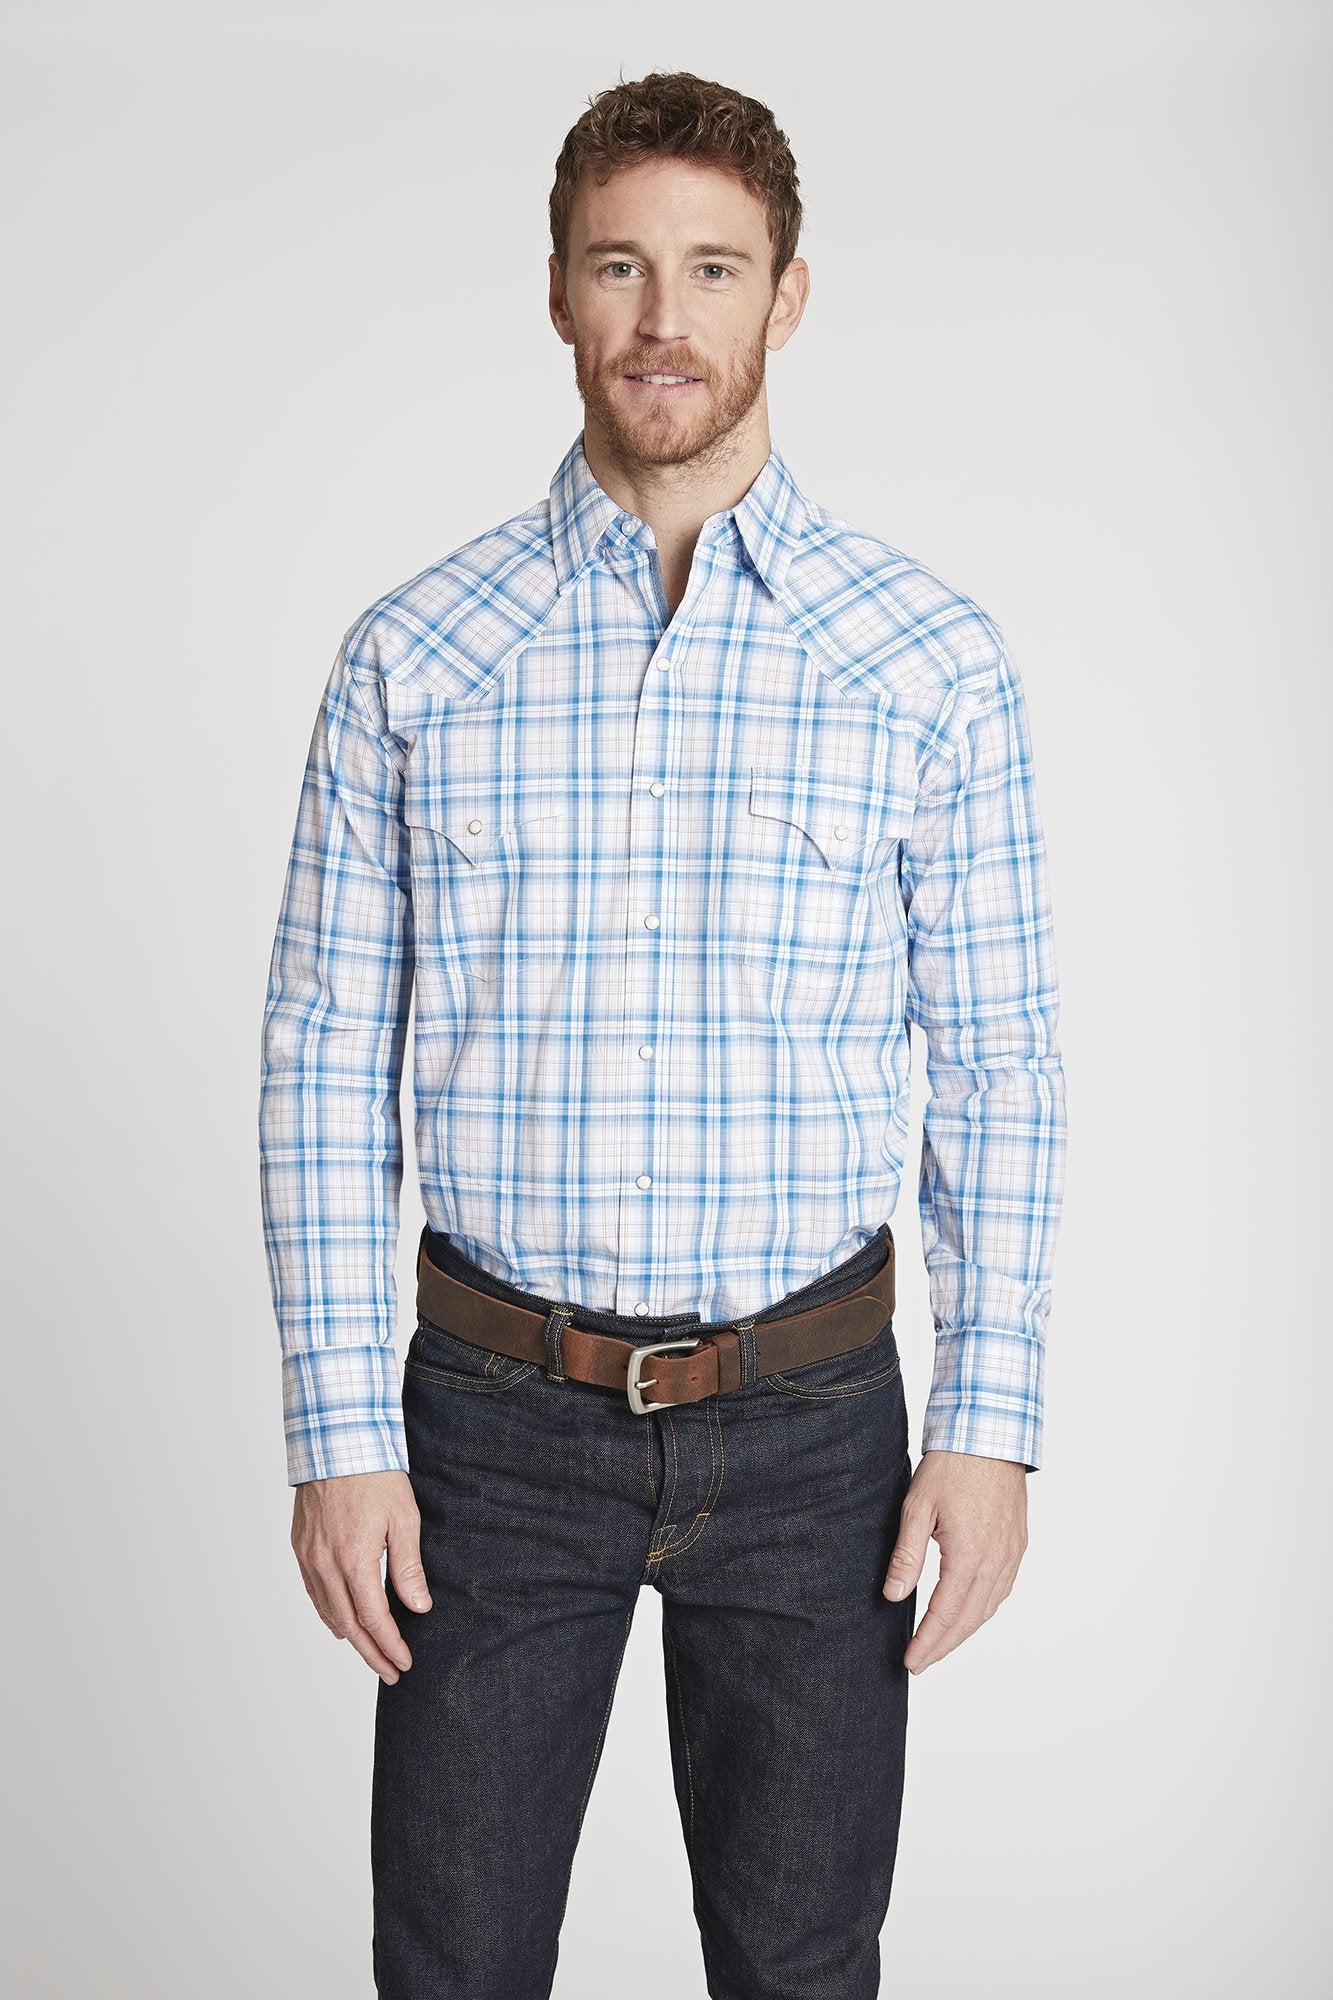 Men's Black Label Premium Cotton Plaid Western Shirt | Ely Cattleman